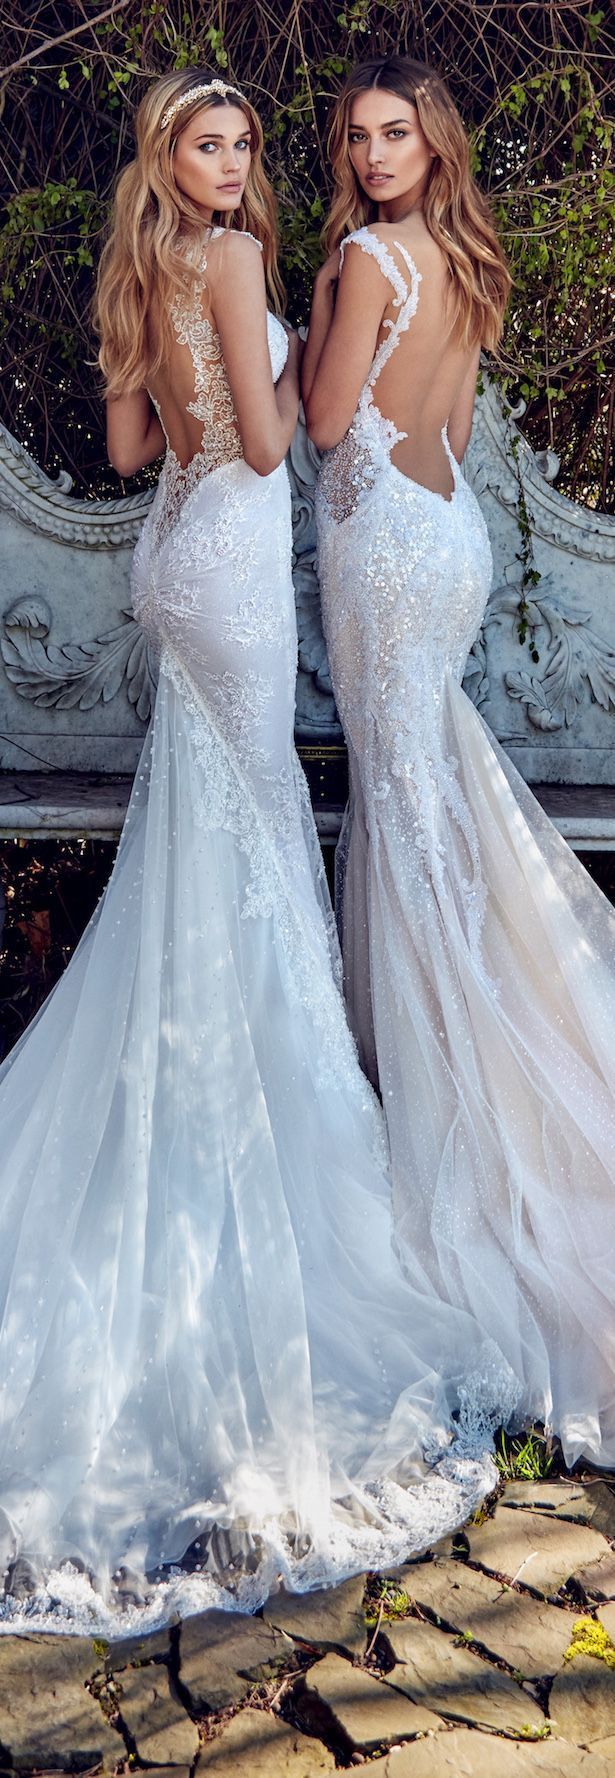 Galia lahav spring collection le secret royal wedding